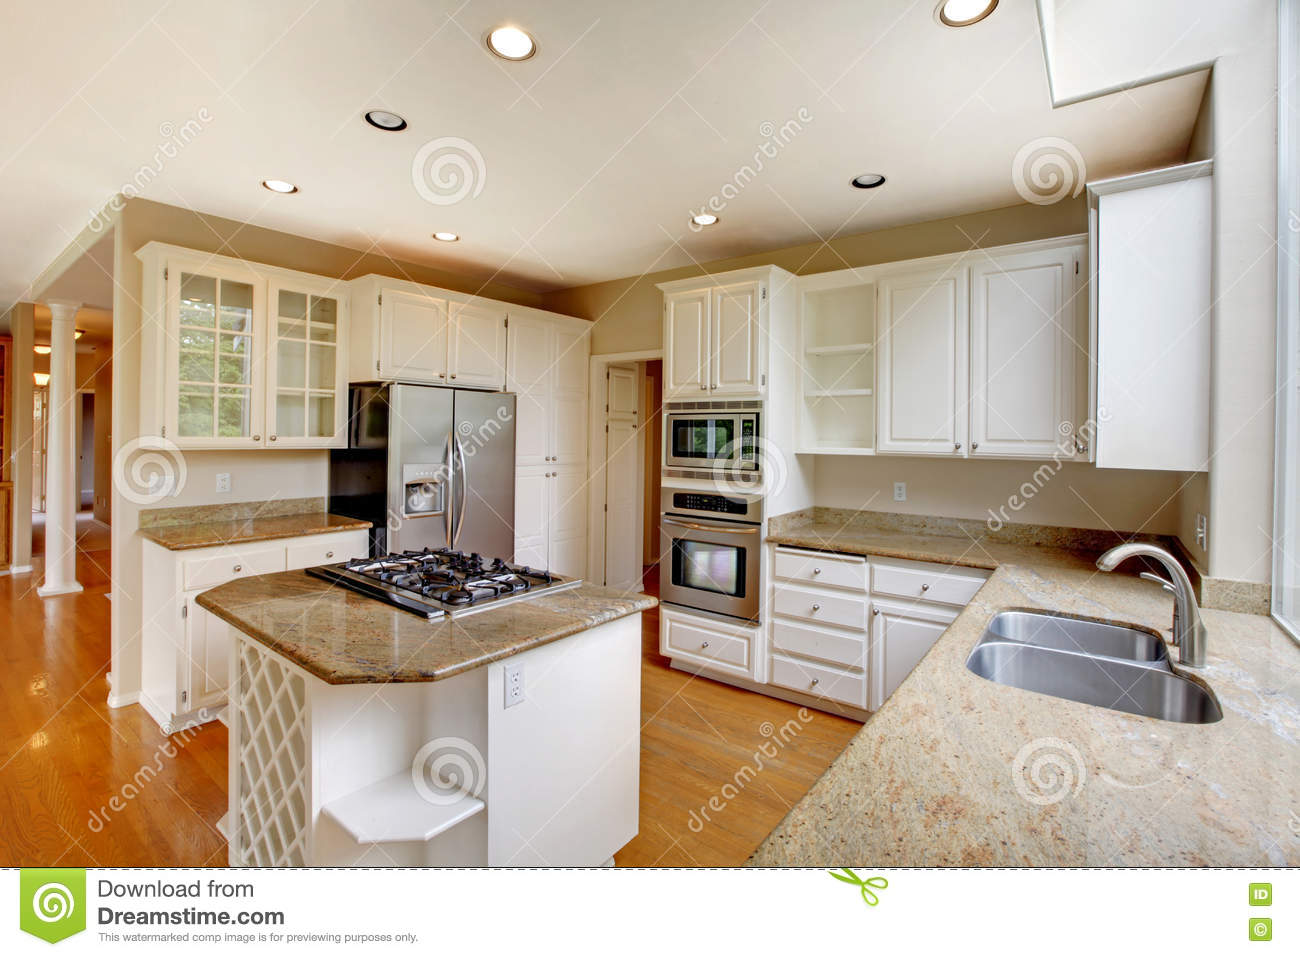 classic american kitchen interior with white cabinets and built-in